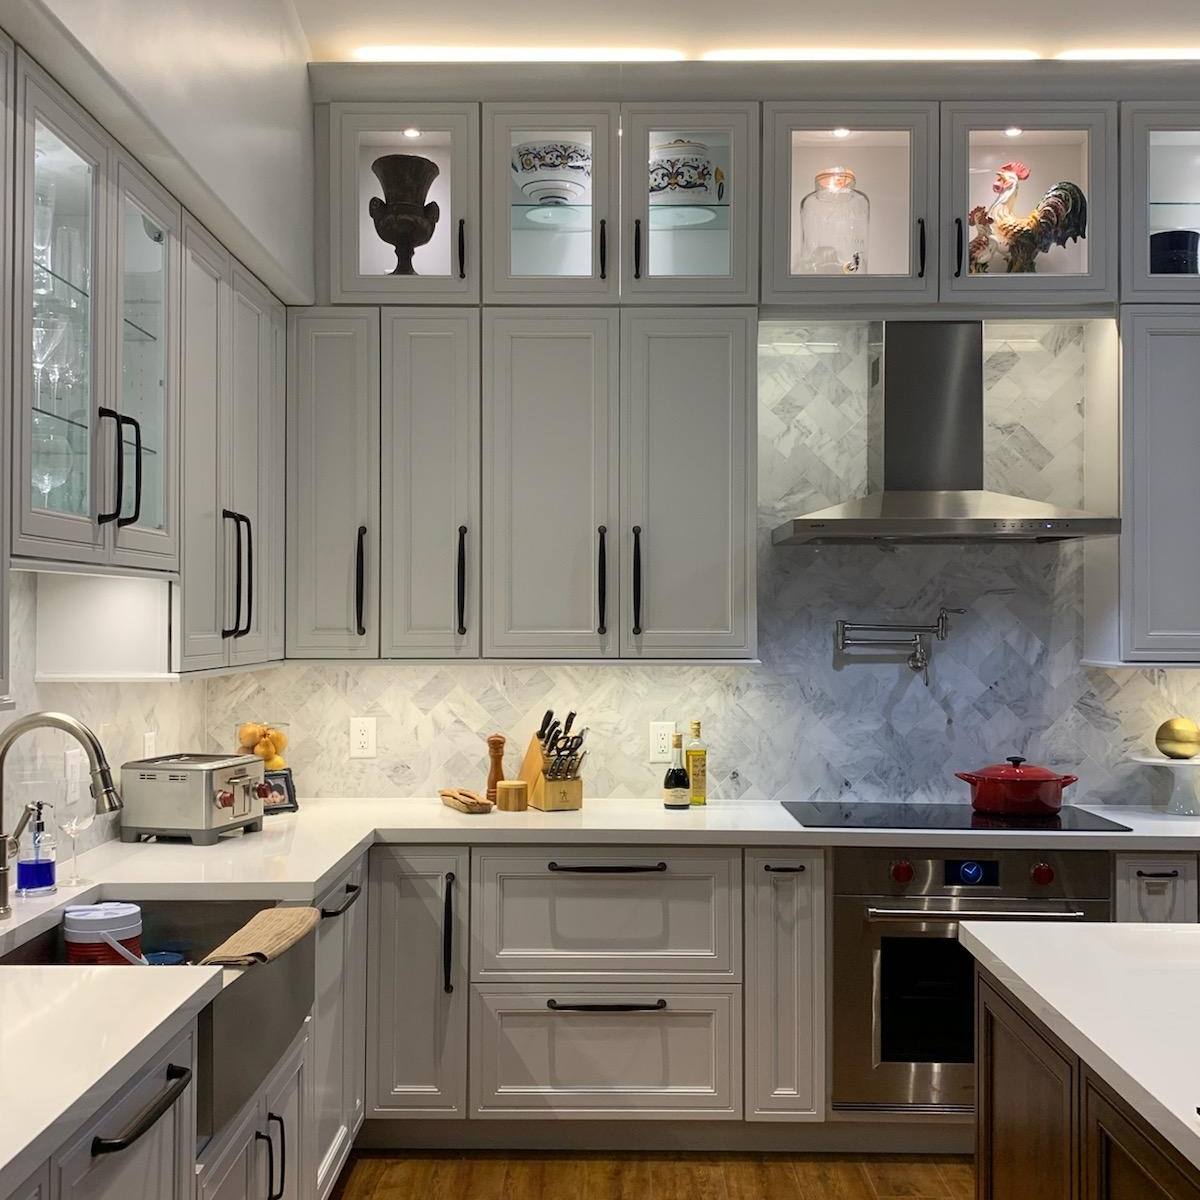 Top 10 Best Cabinet Refinishers In Fort Lauderdale Fl Angie S List